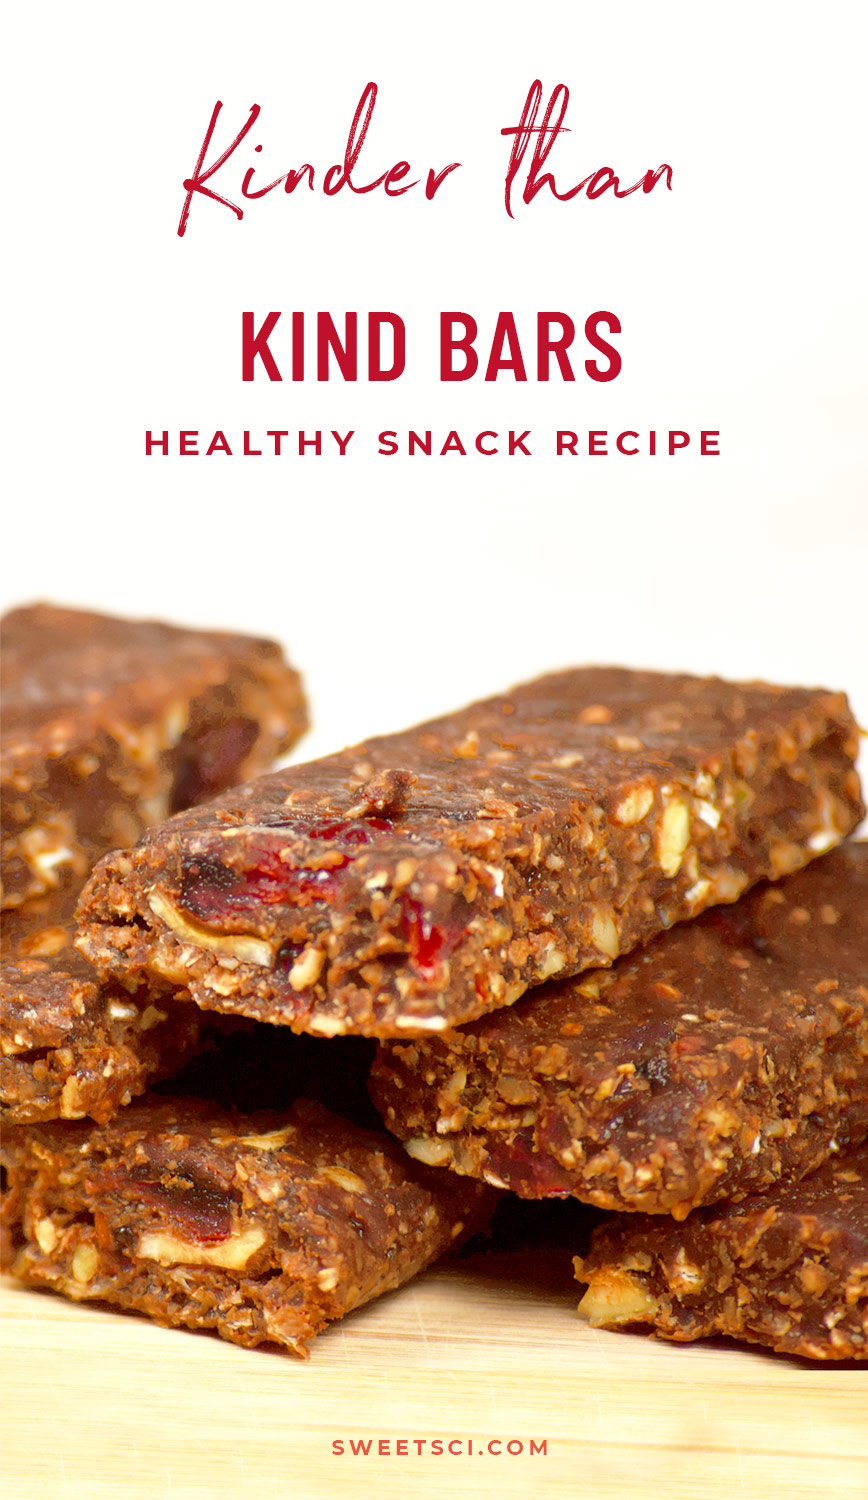 Kinder Than Kind Bars Recipe: Energy Bar, Power Bar, Travel Snack, On-th-go, Healthy Snack, Nut Bar, Natural, Vegan, Gluten Free, How to make, Step by Step guide, What to eat in Recovery, Best Power Bar - Sweet Science Nutrition & Wellness, Healthy Sobriety with health coach and Nutritionist Elena Skroznikova